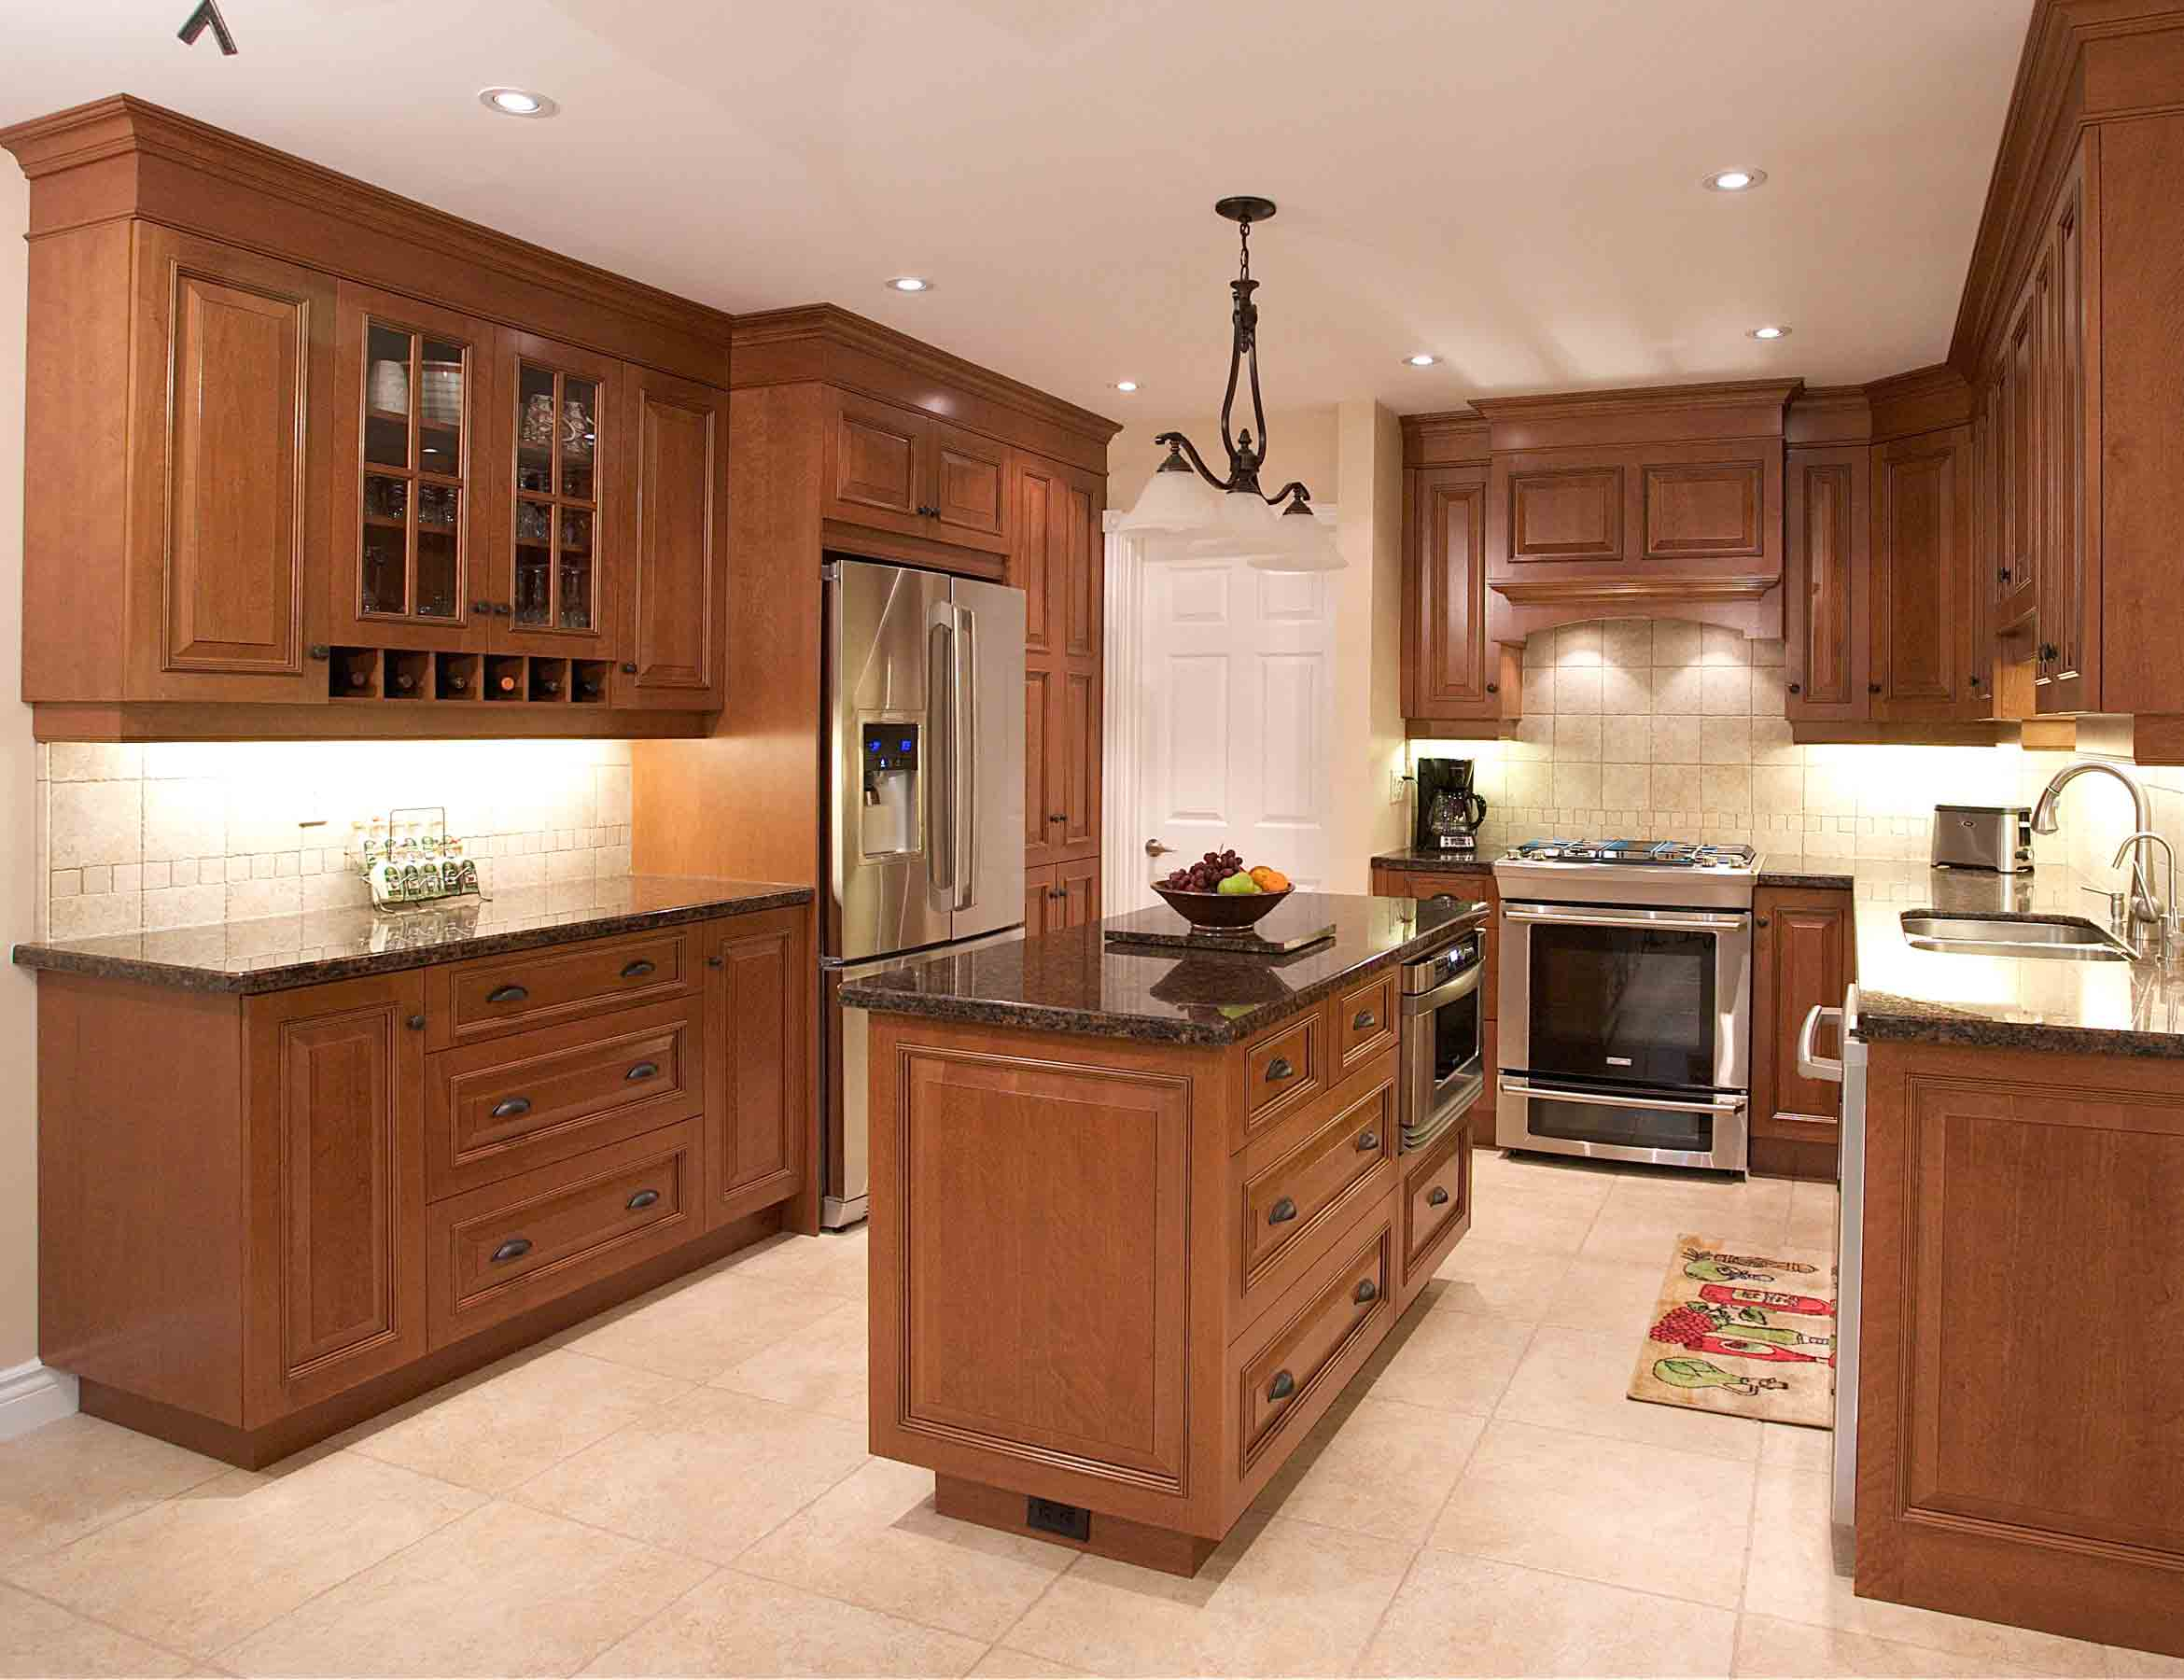 Kitchen Newmarket, Custom Cabinetry Designs, Kitchen. Laundry Room Decoration. Dining Room Furniture Sets Ikea. Grow Room Design Plans. Two Story Great Room. Room Divider Singapore. Sliding Room Dividers Cheap. Cricut Craft Room. Teak Dining Room Set